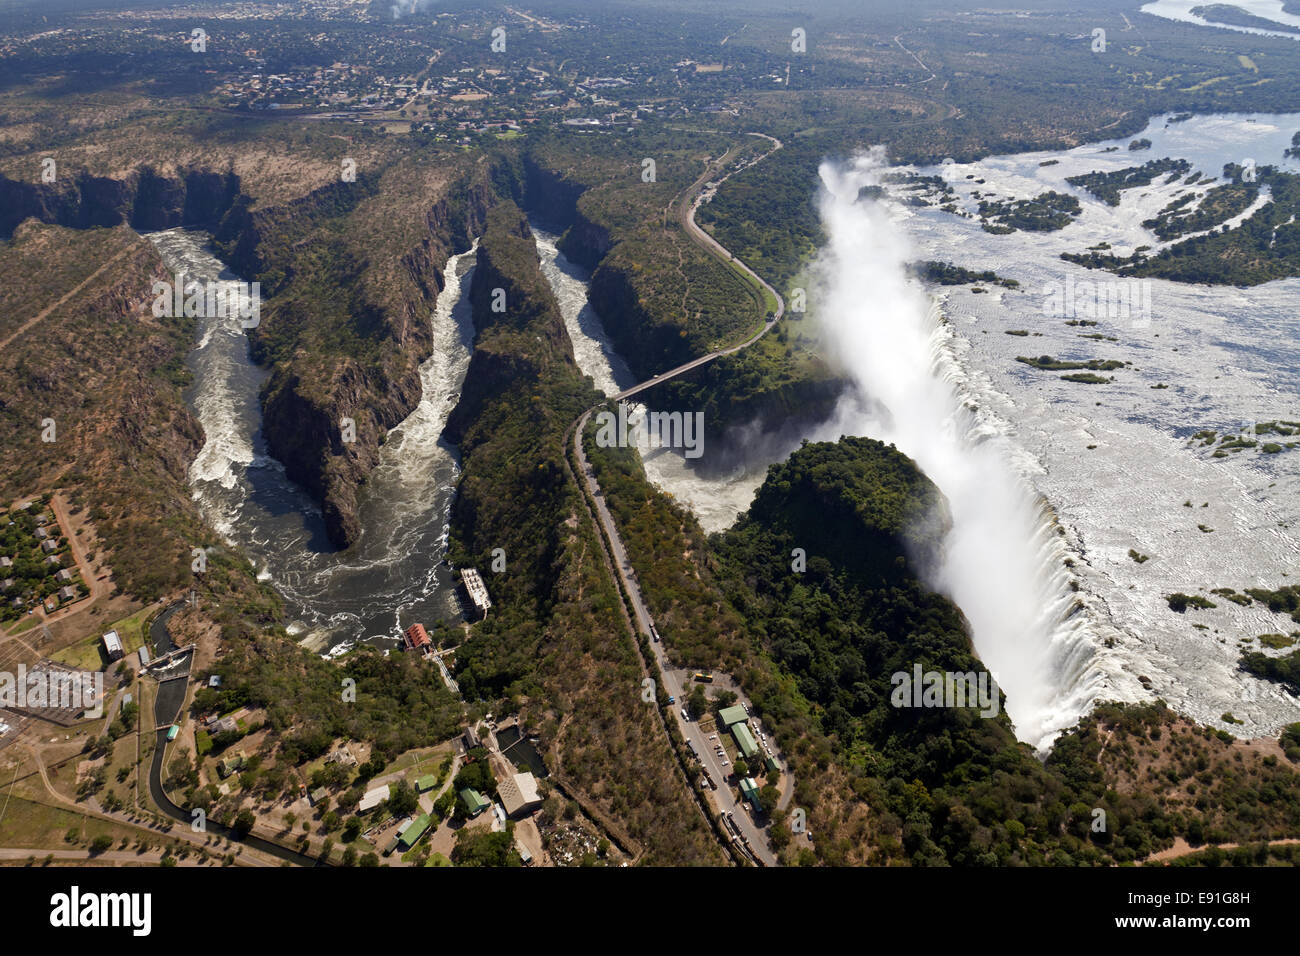 Airs picture of the Victoria Falls - Stock Image